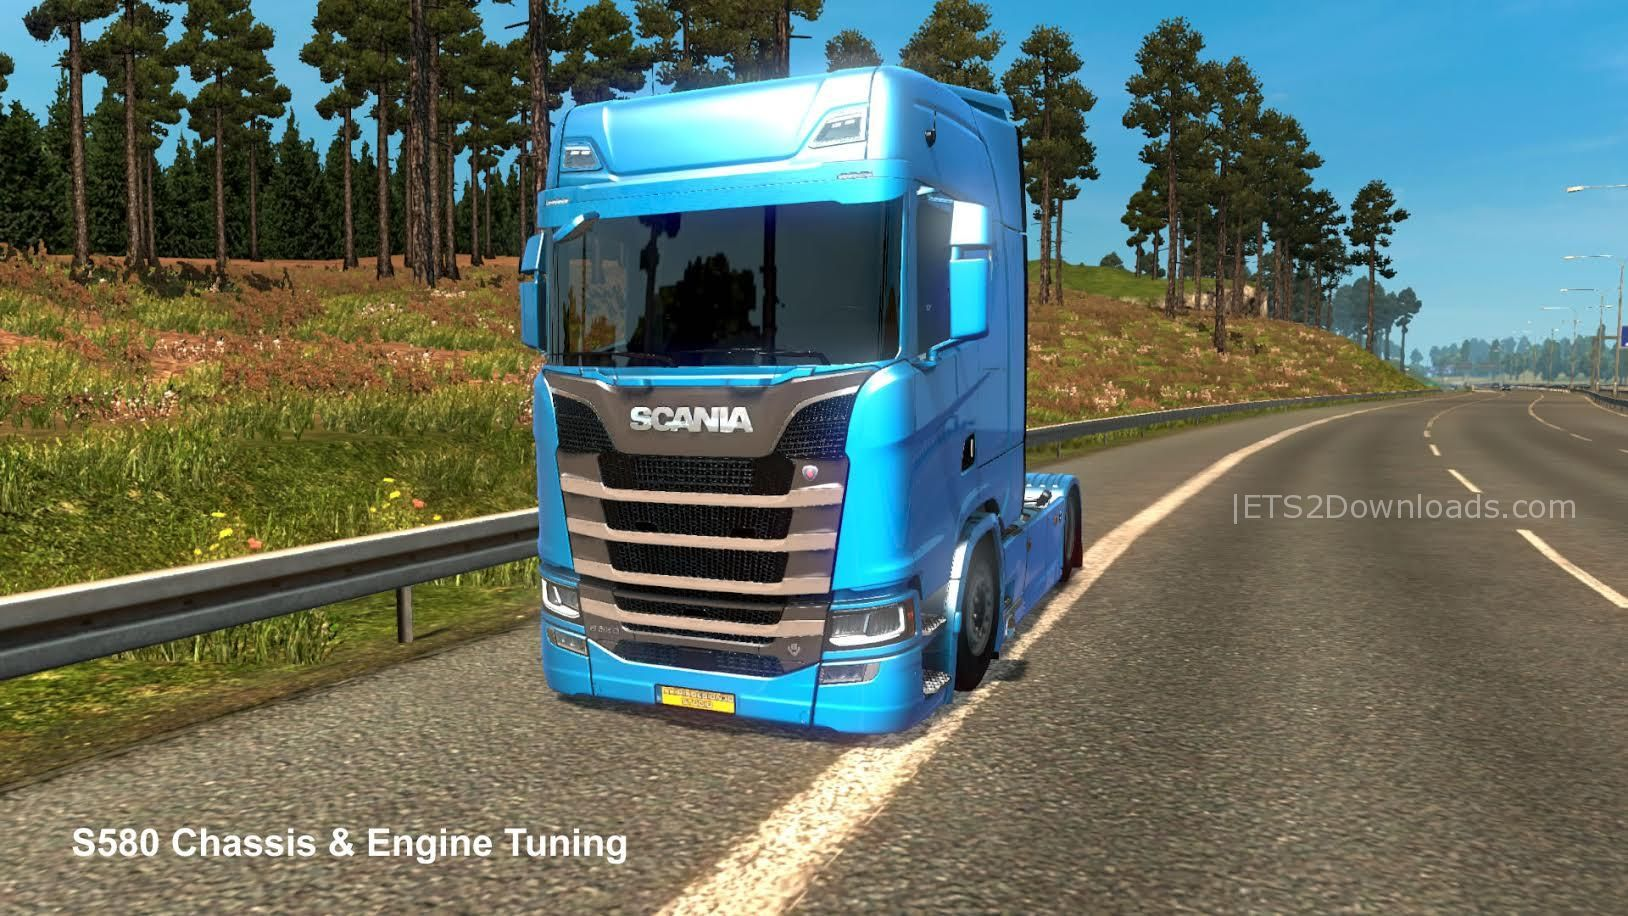 scania-s580-chassis-engine-tuning-1